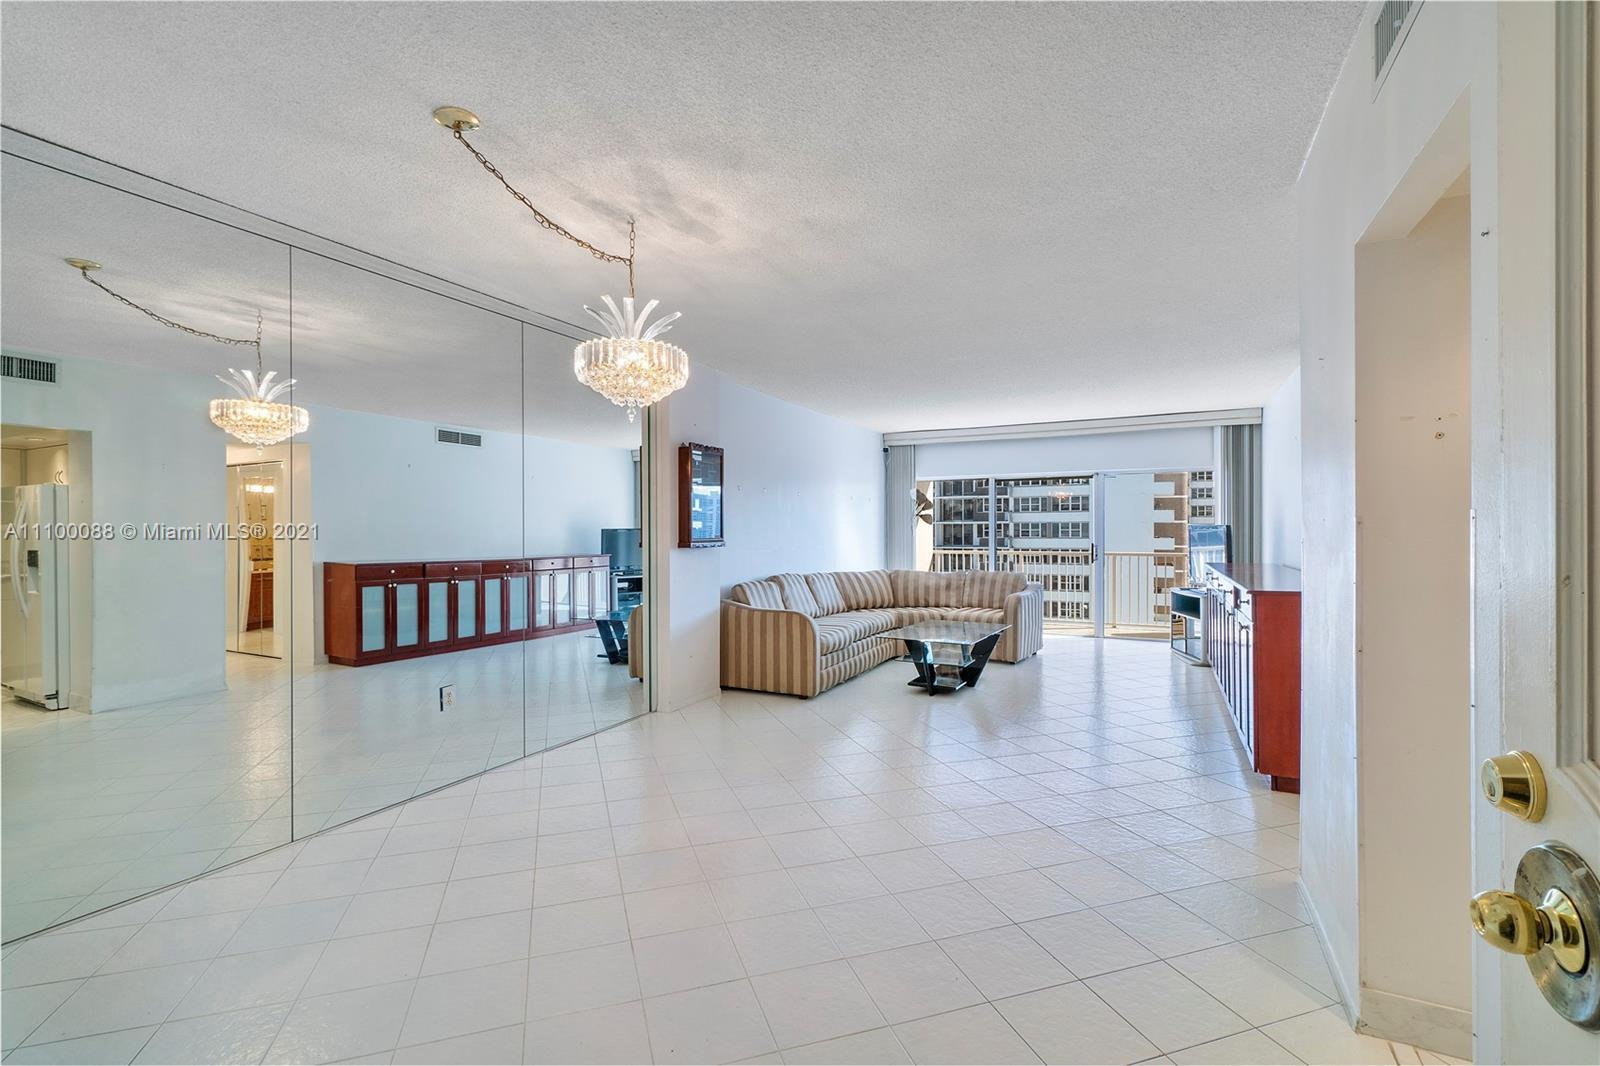 City, Intracoastal and ocean views await you at this rarely available, South facing and light filled